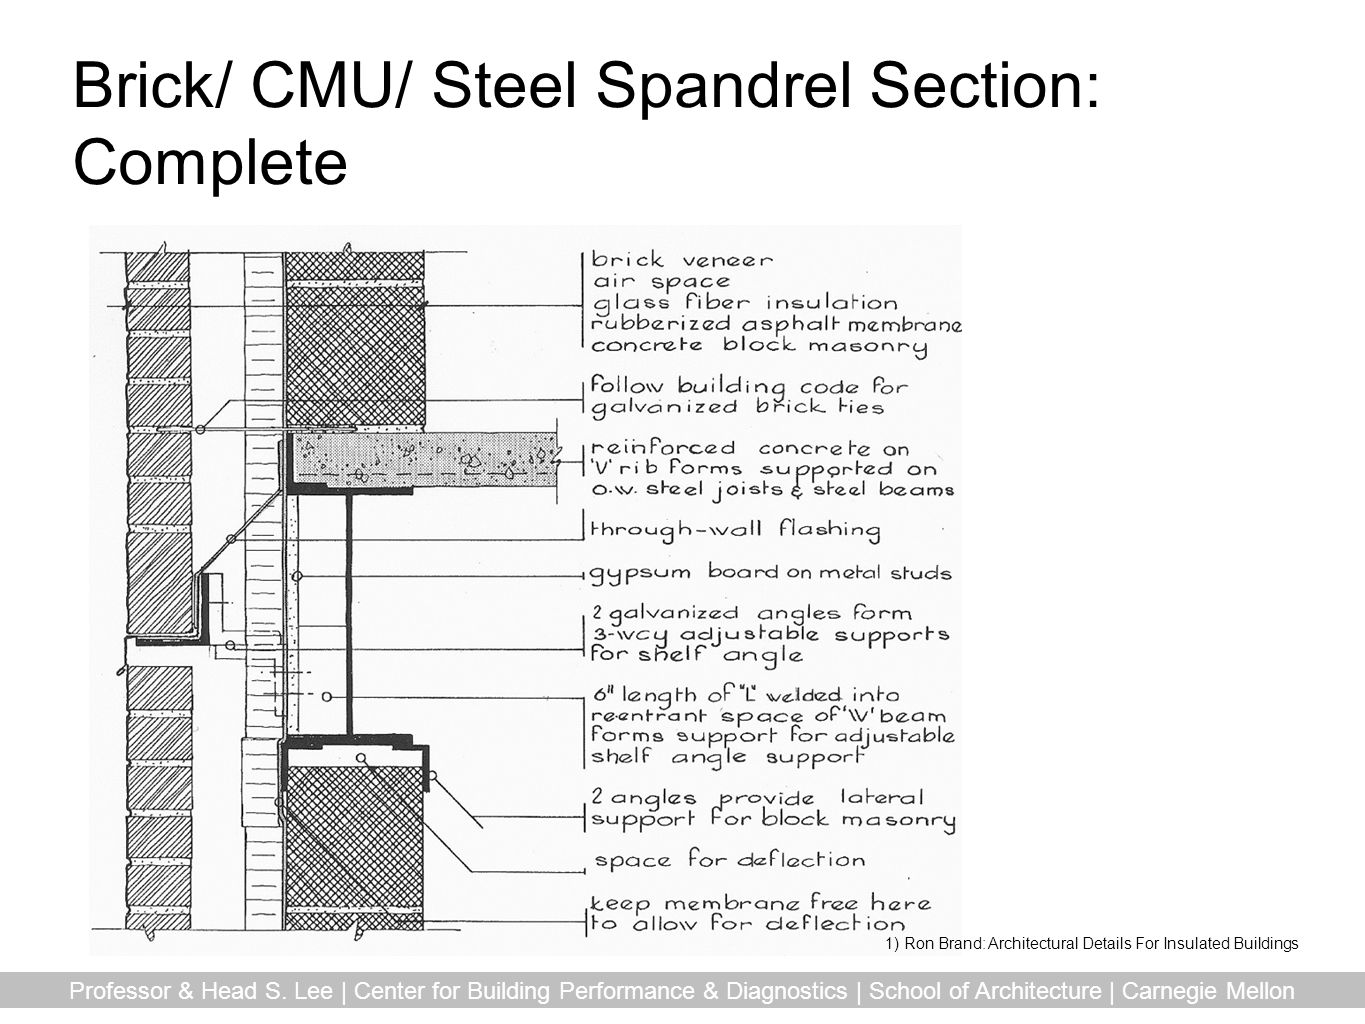 Brick/ CMU/ Steel Spandrel Section: Complete